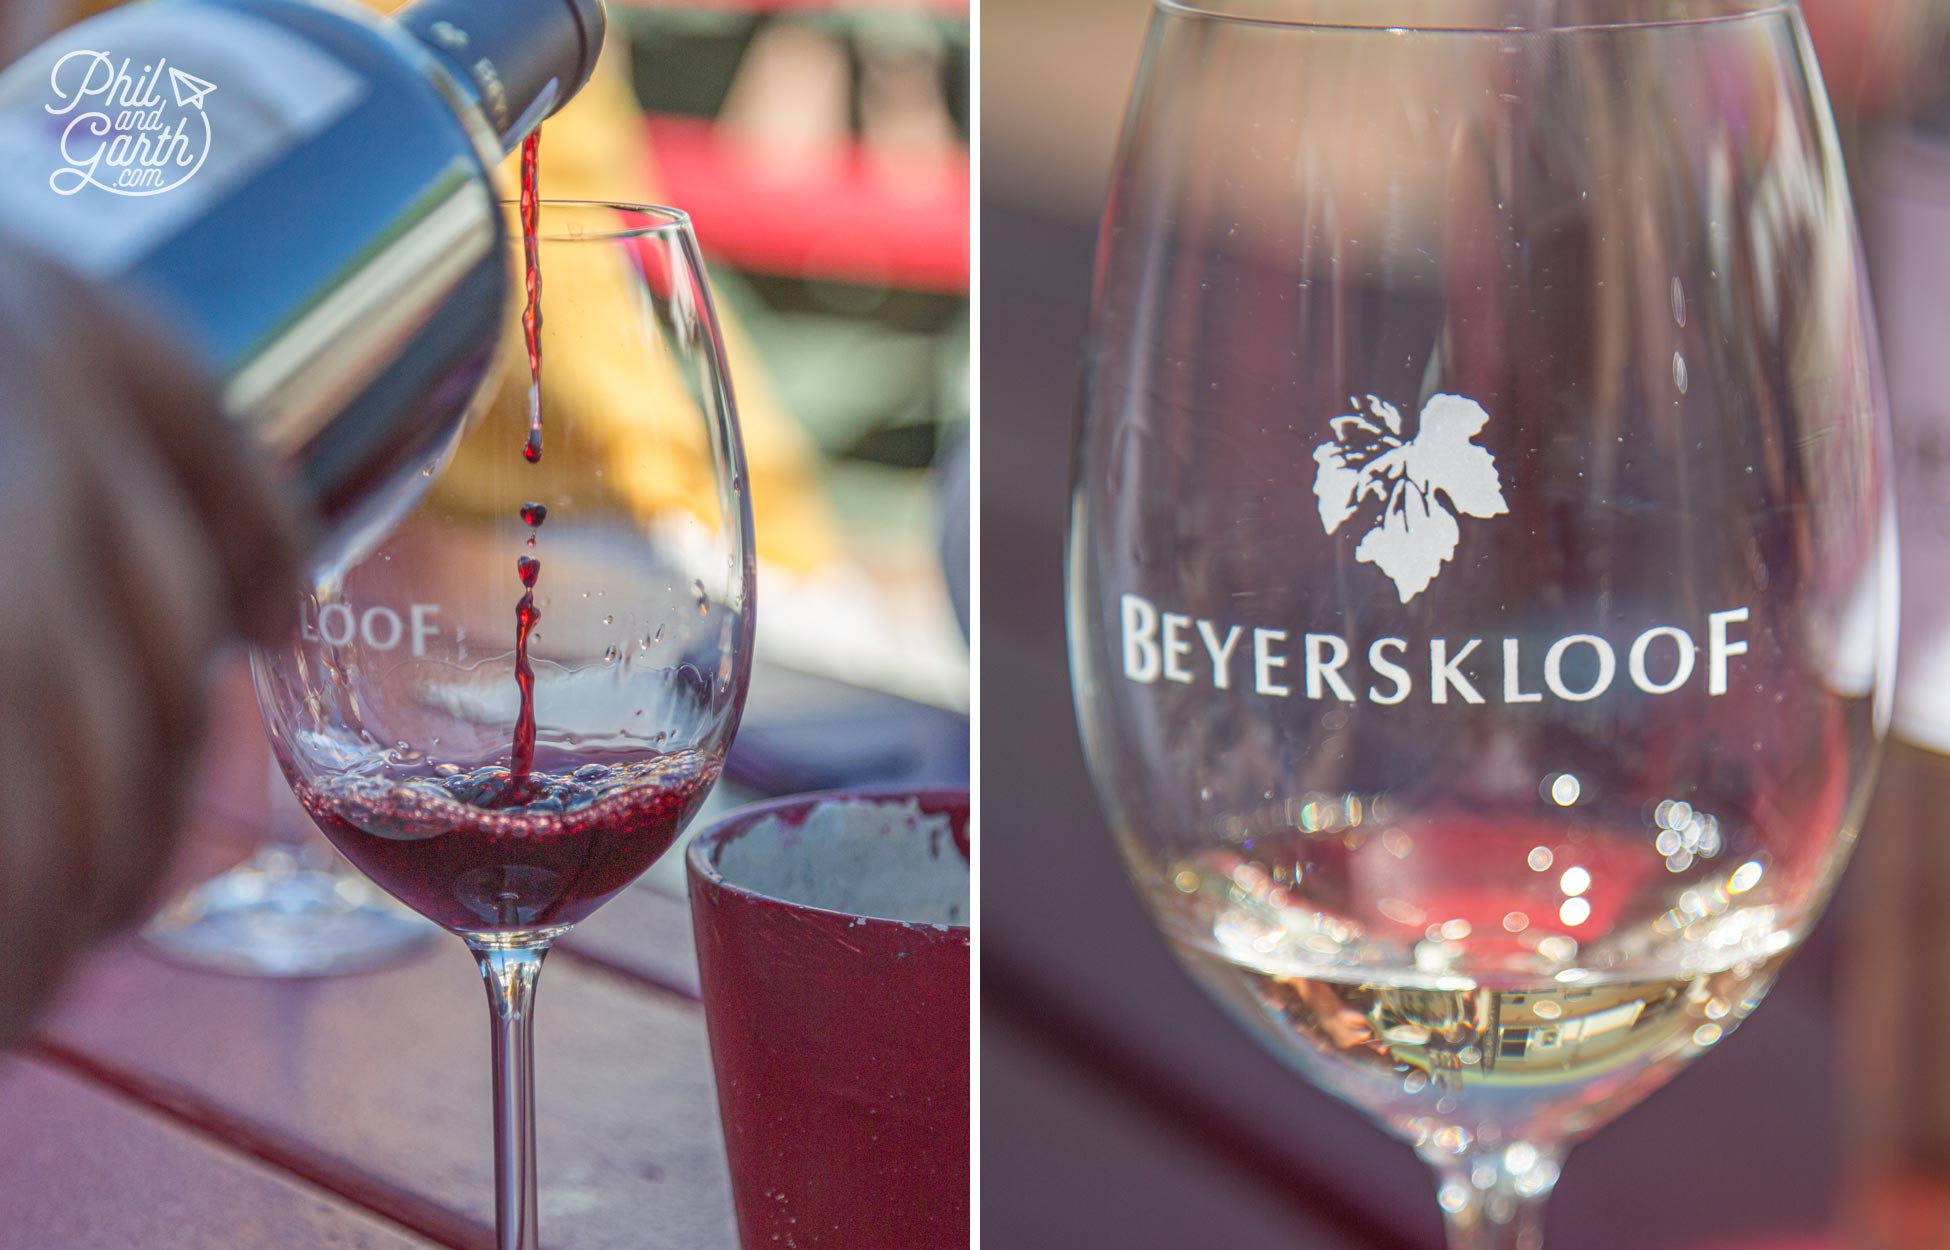 Wine tasting at Beyerskloof